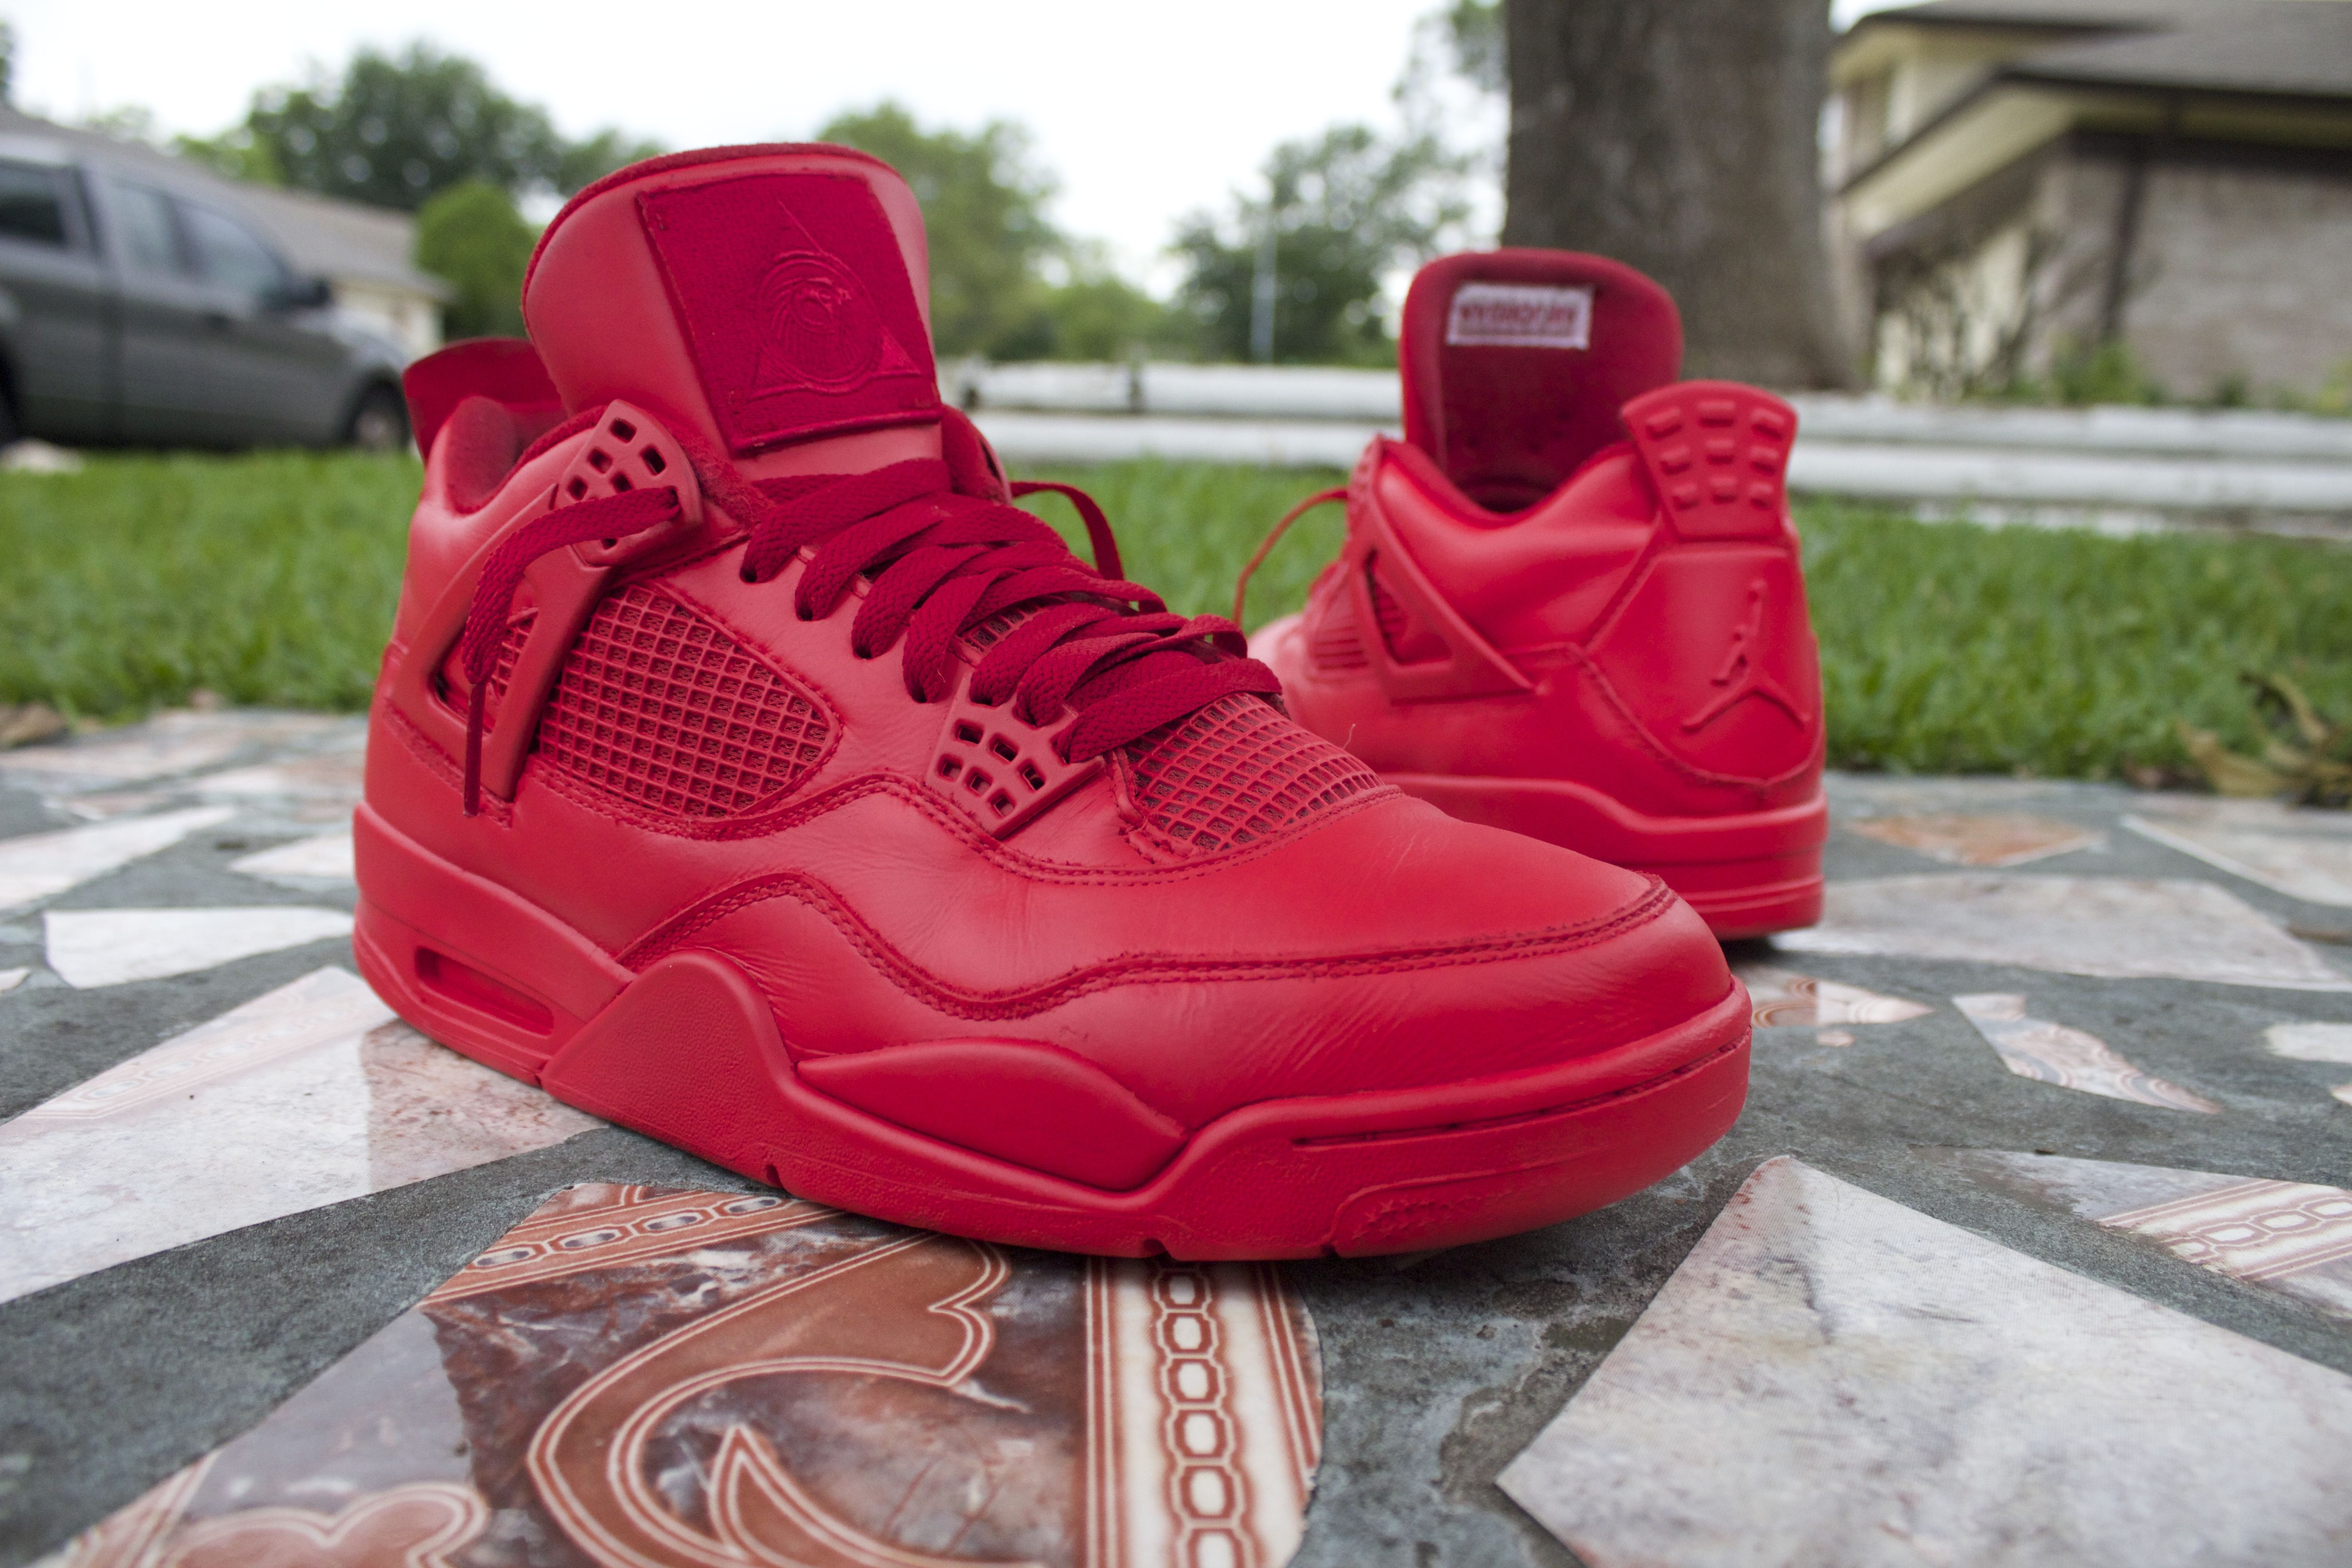 new concept 8c5c3 0a7f6 Custom Red October Yeezy inspired Jordans from 93 Customs!